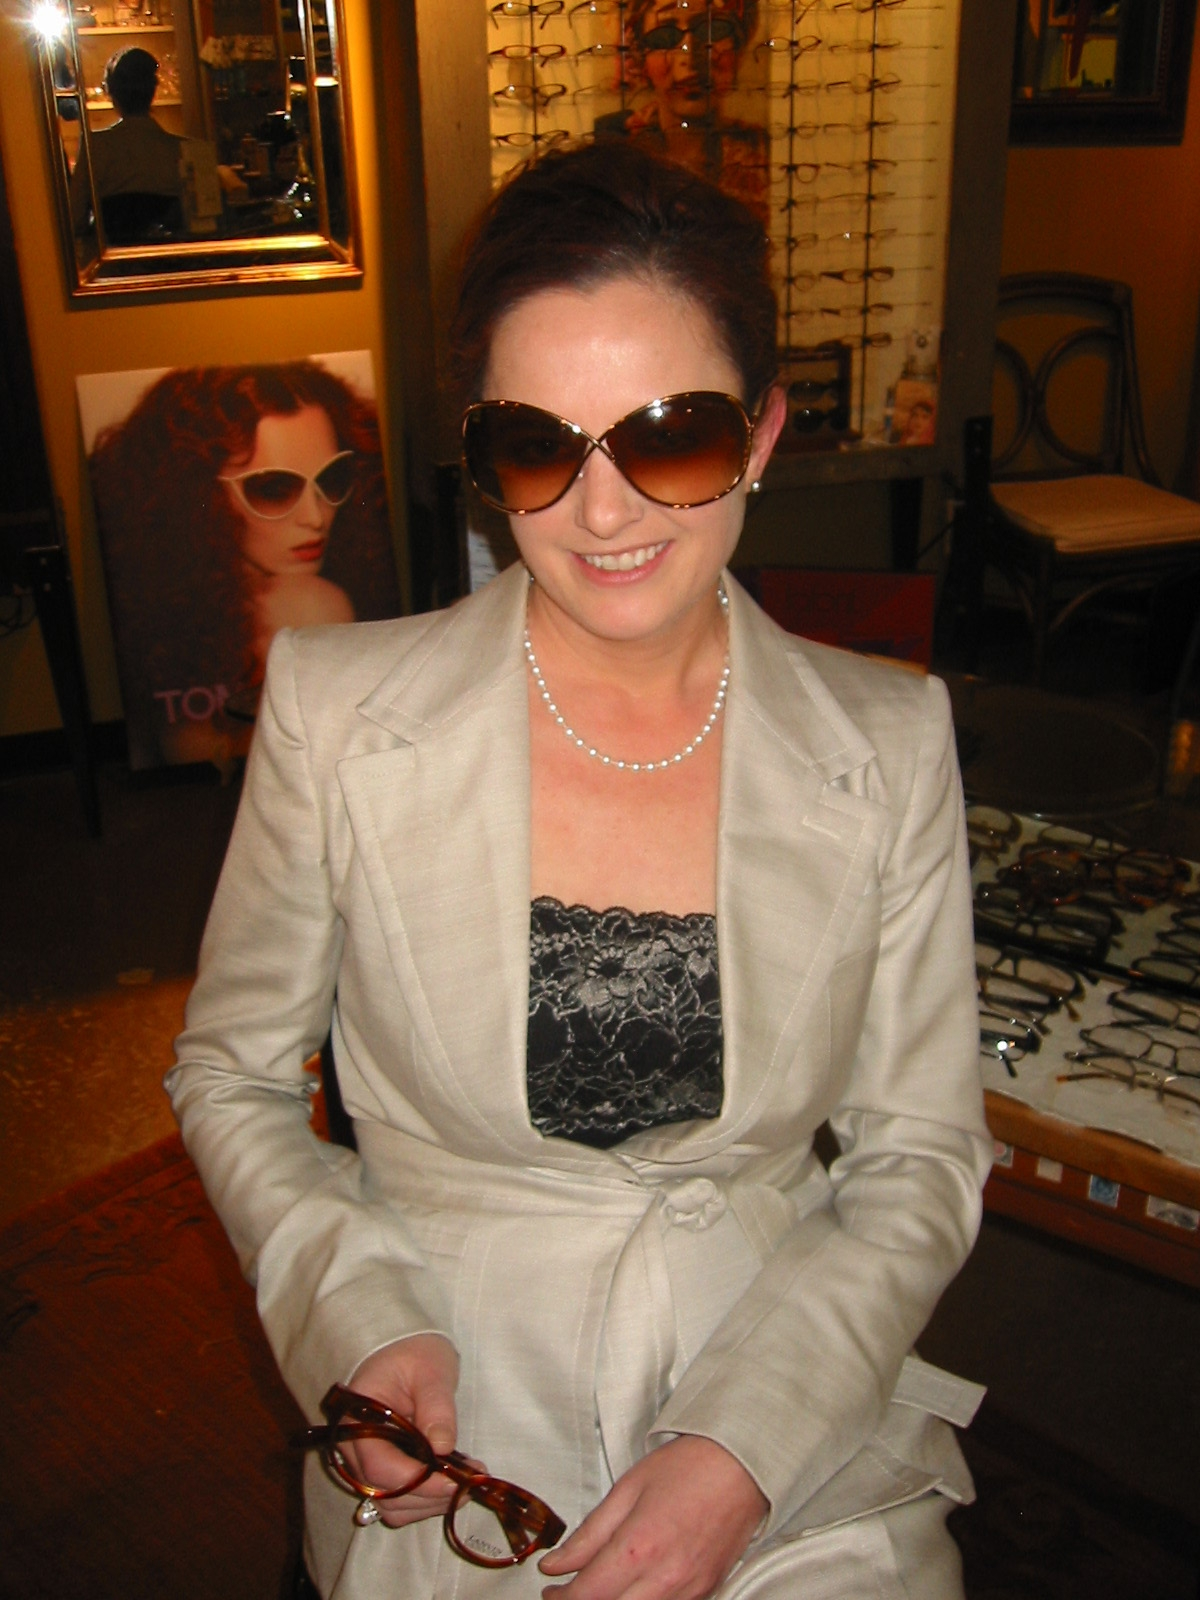 Dr. Michelle Calder Cardwell O.D. - Urban Optiques Vision & Couture Eyewear